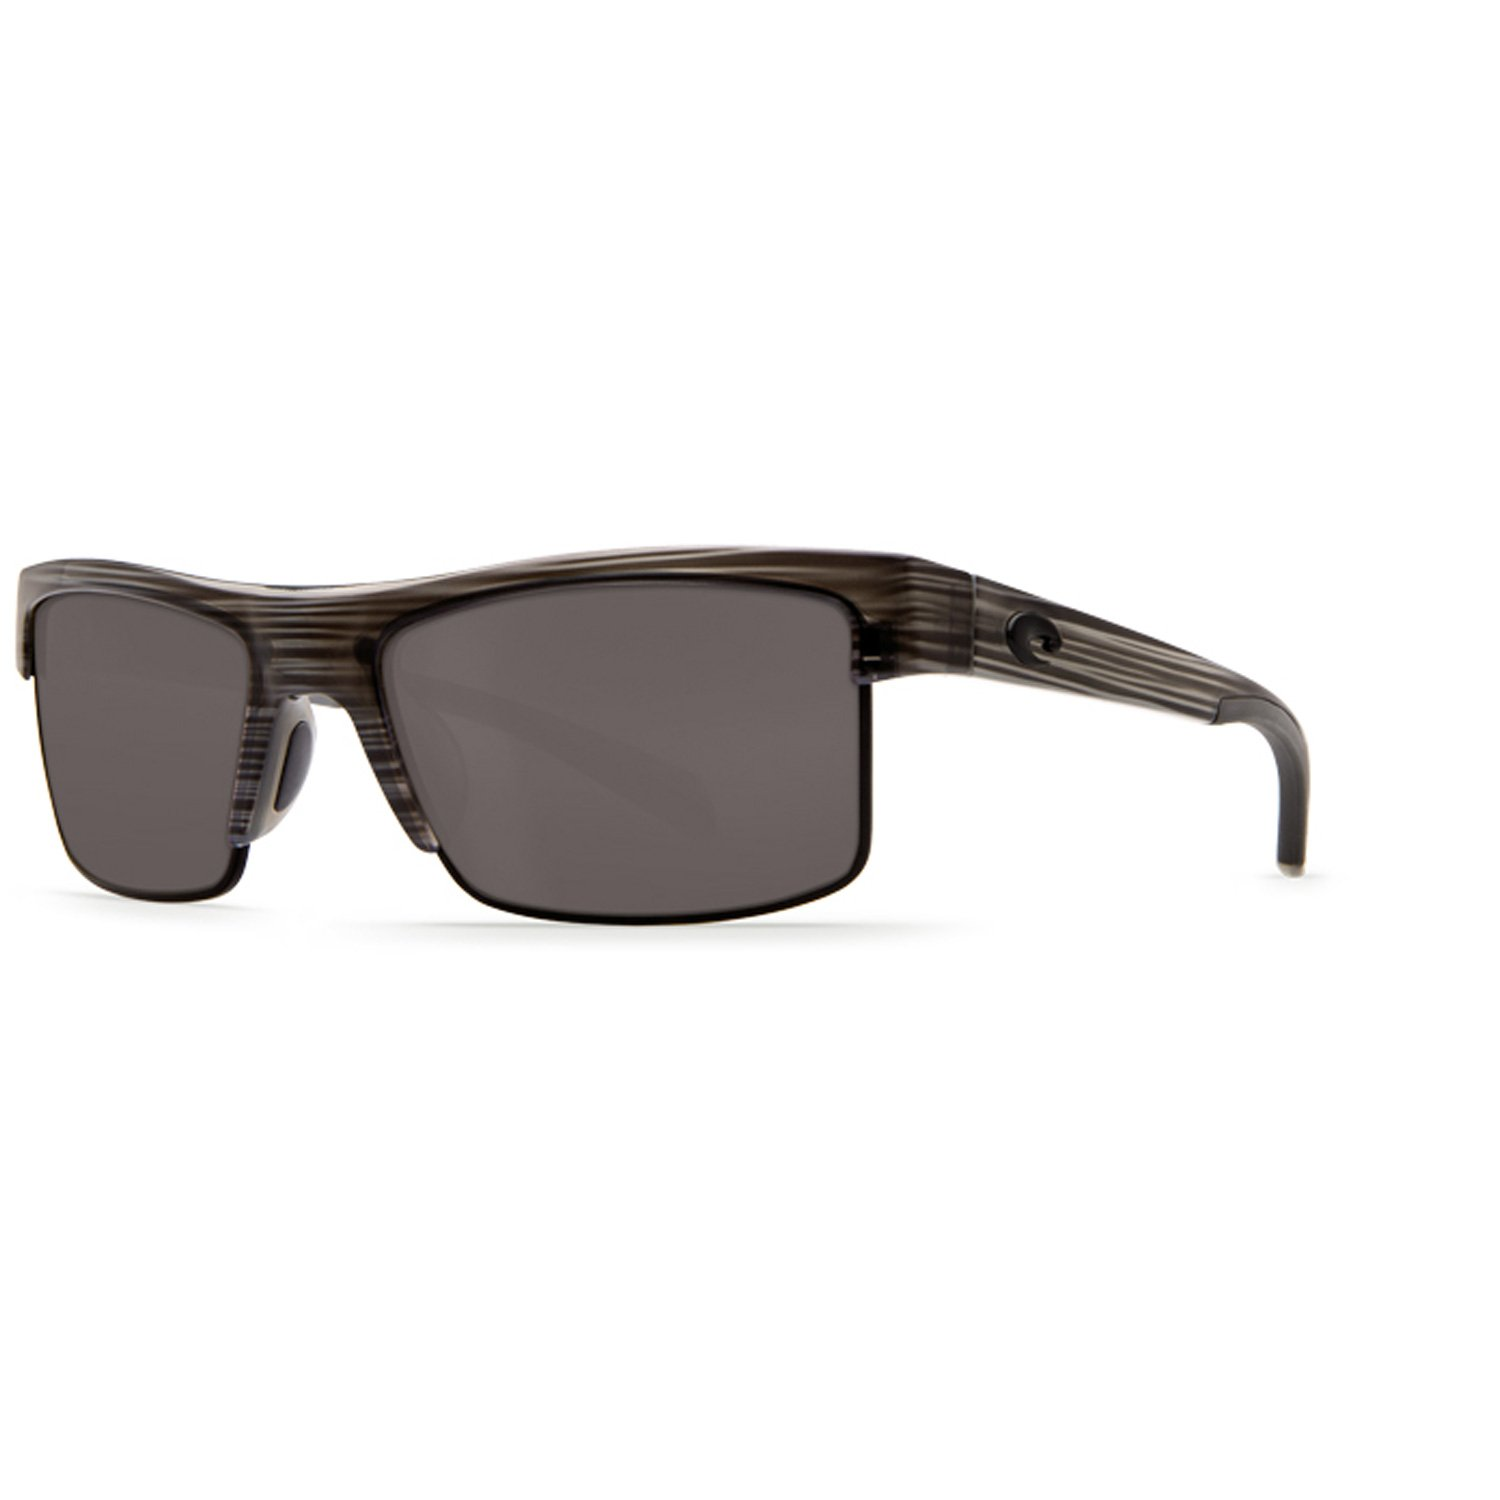 a07714c93c Amazon.com  Costa Del Mar South Sea Sunglasses